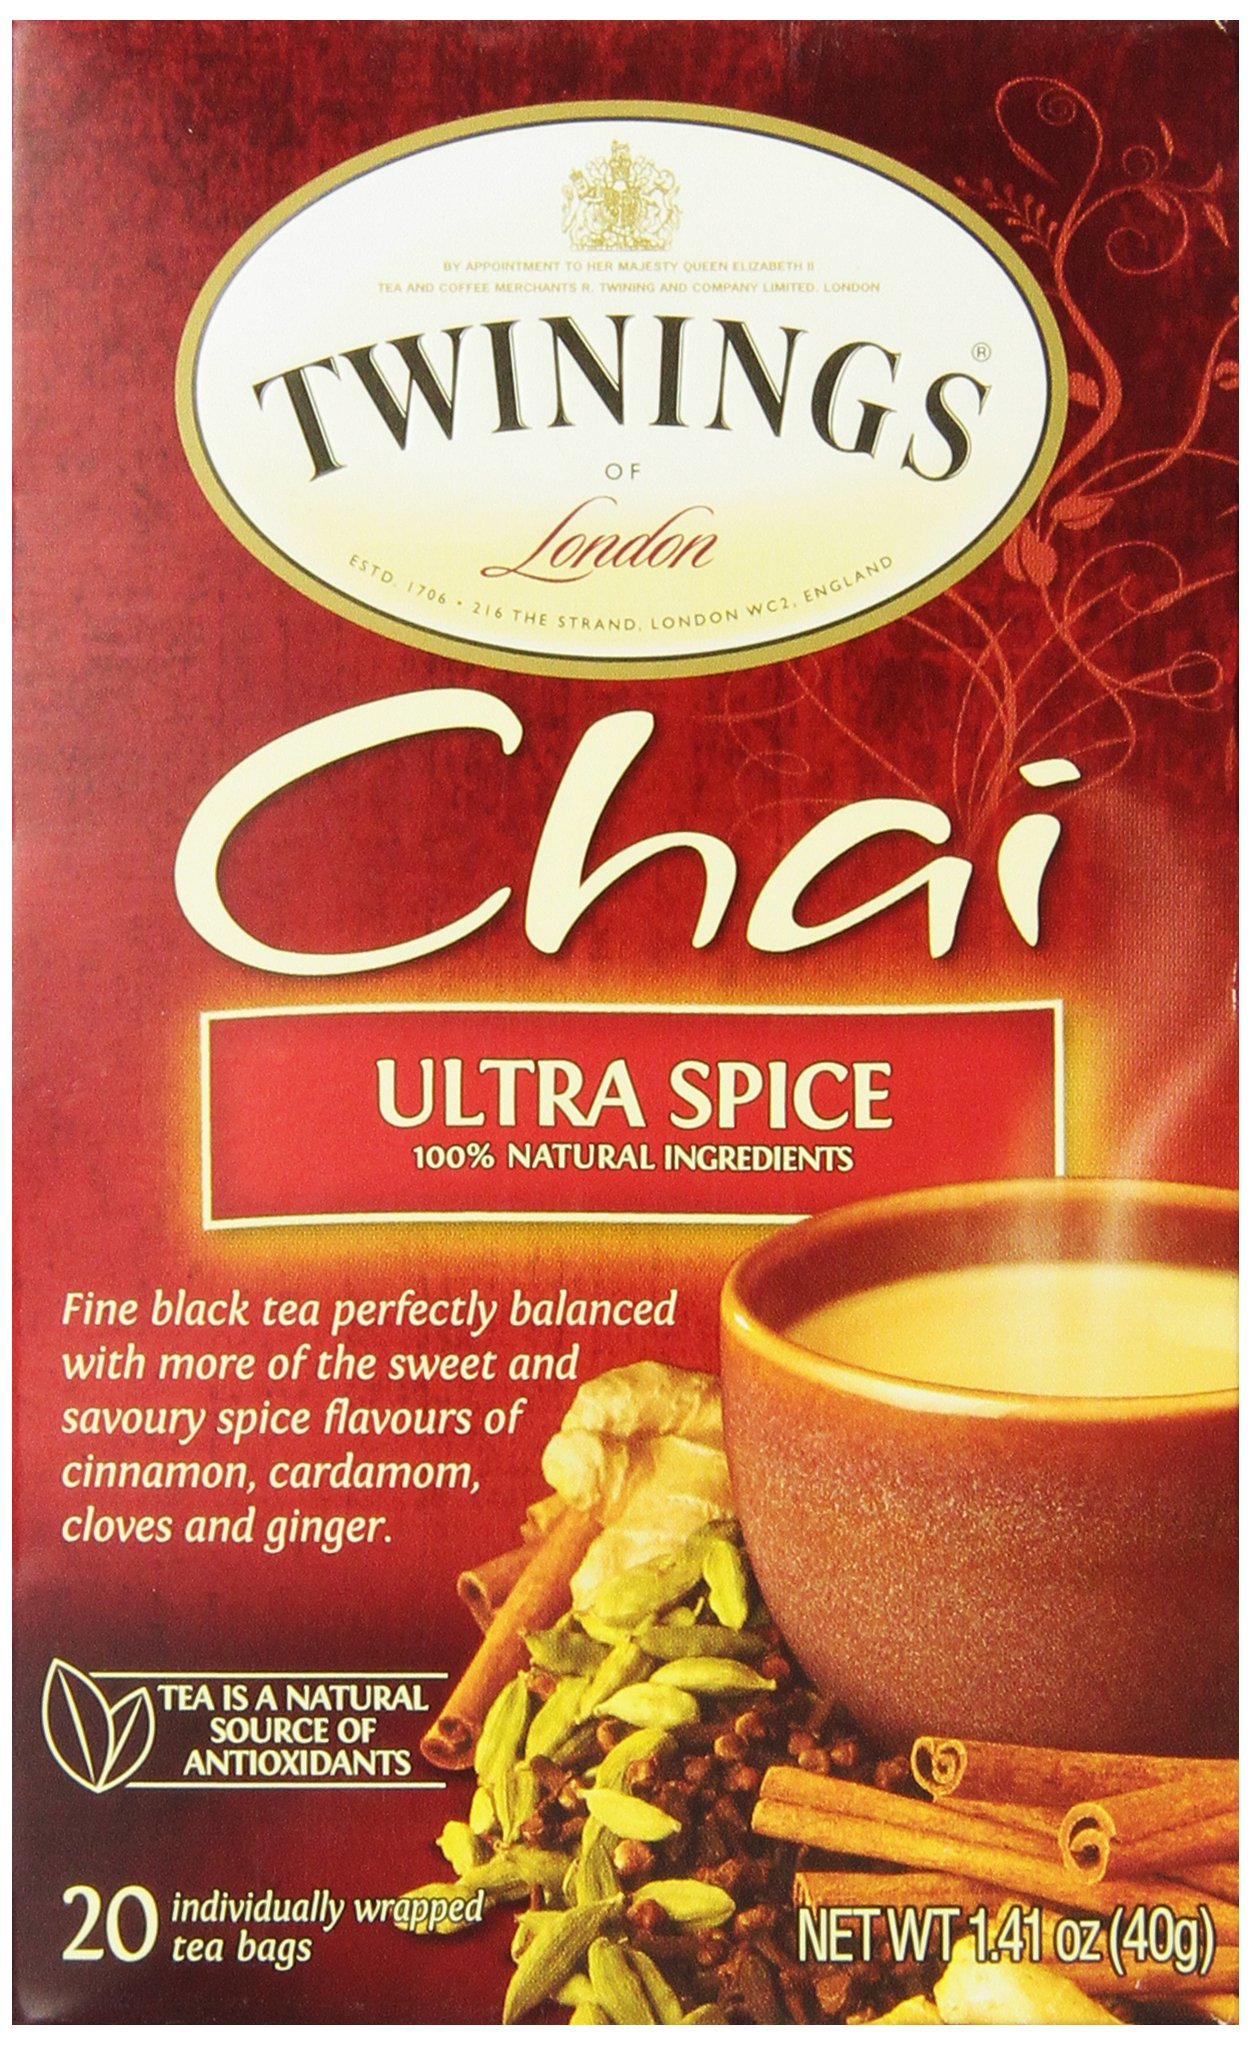 Twinings of London Ultra Spice Chai Tea Bags, 20 Count (Pack of 6) by Twinings